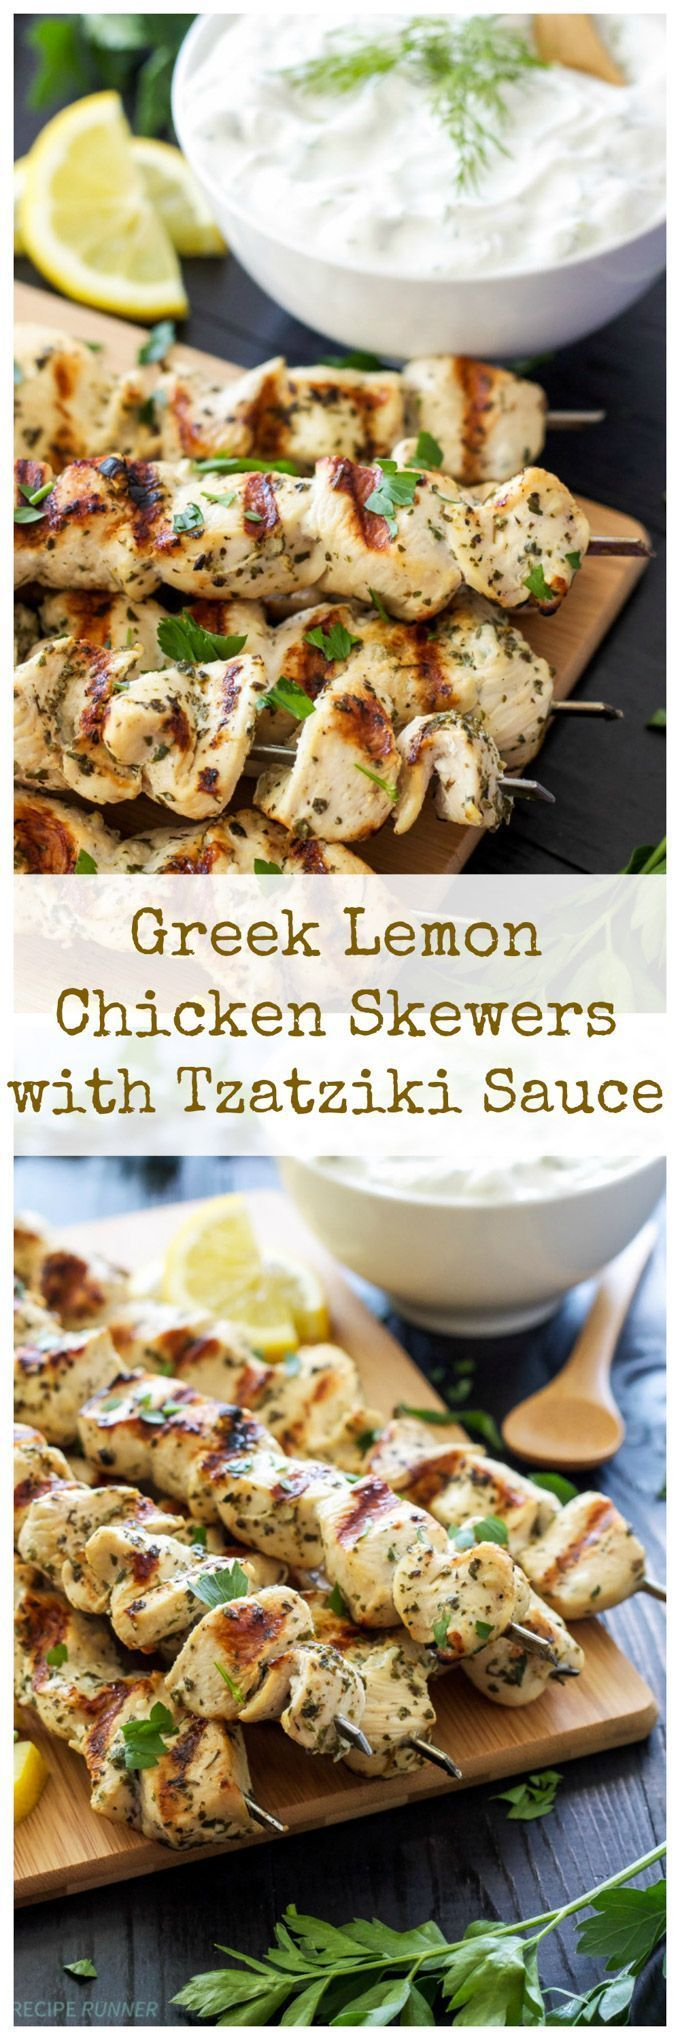 Greek Lemon Chicken Skewers with Tzatziki Sauce | Delicious and healthy Greek chicken skewers with a sauce you'll want to slather on everything!